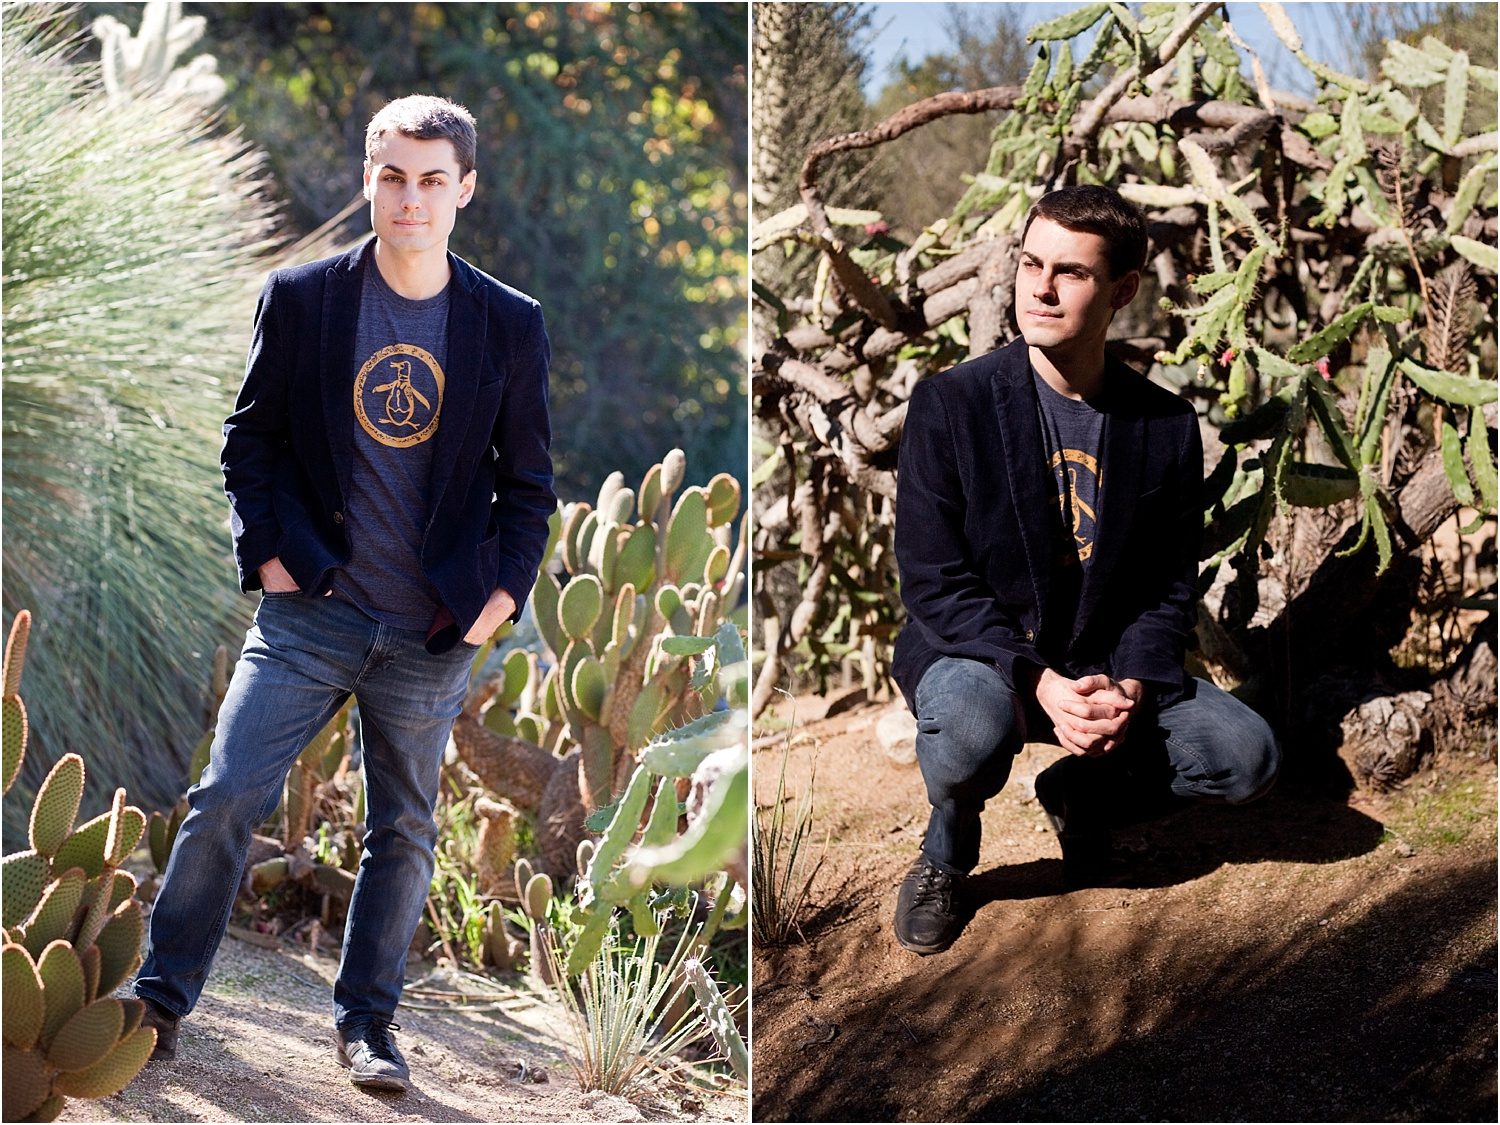 2 portraits of a man - How to do Portrait Photography in Bright Midday Sun